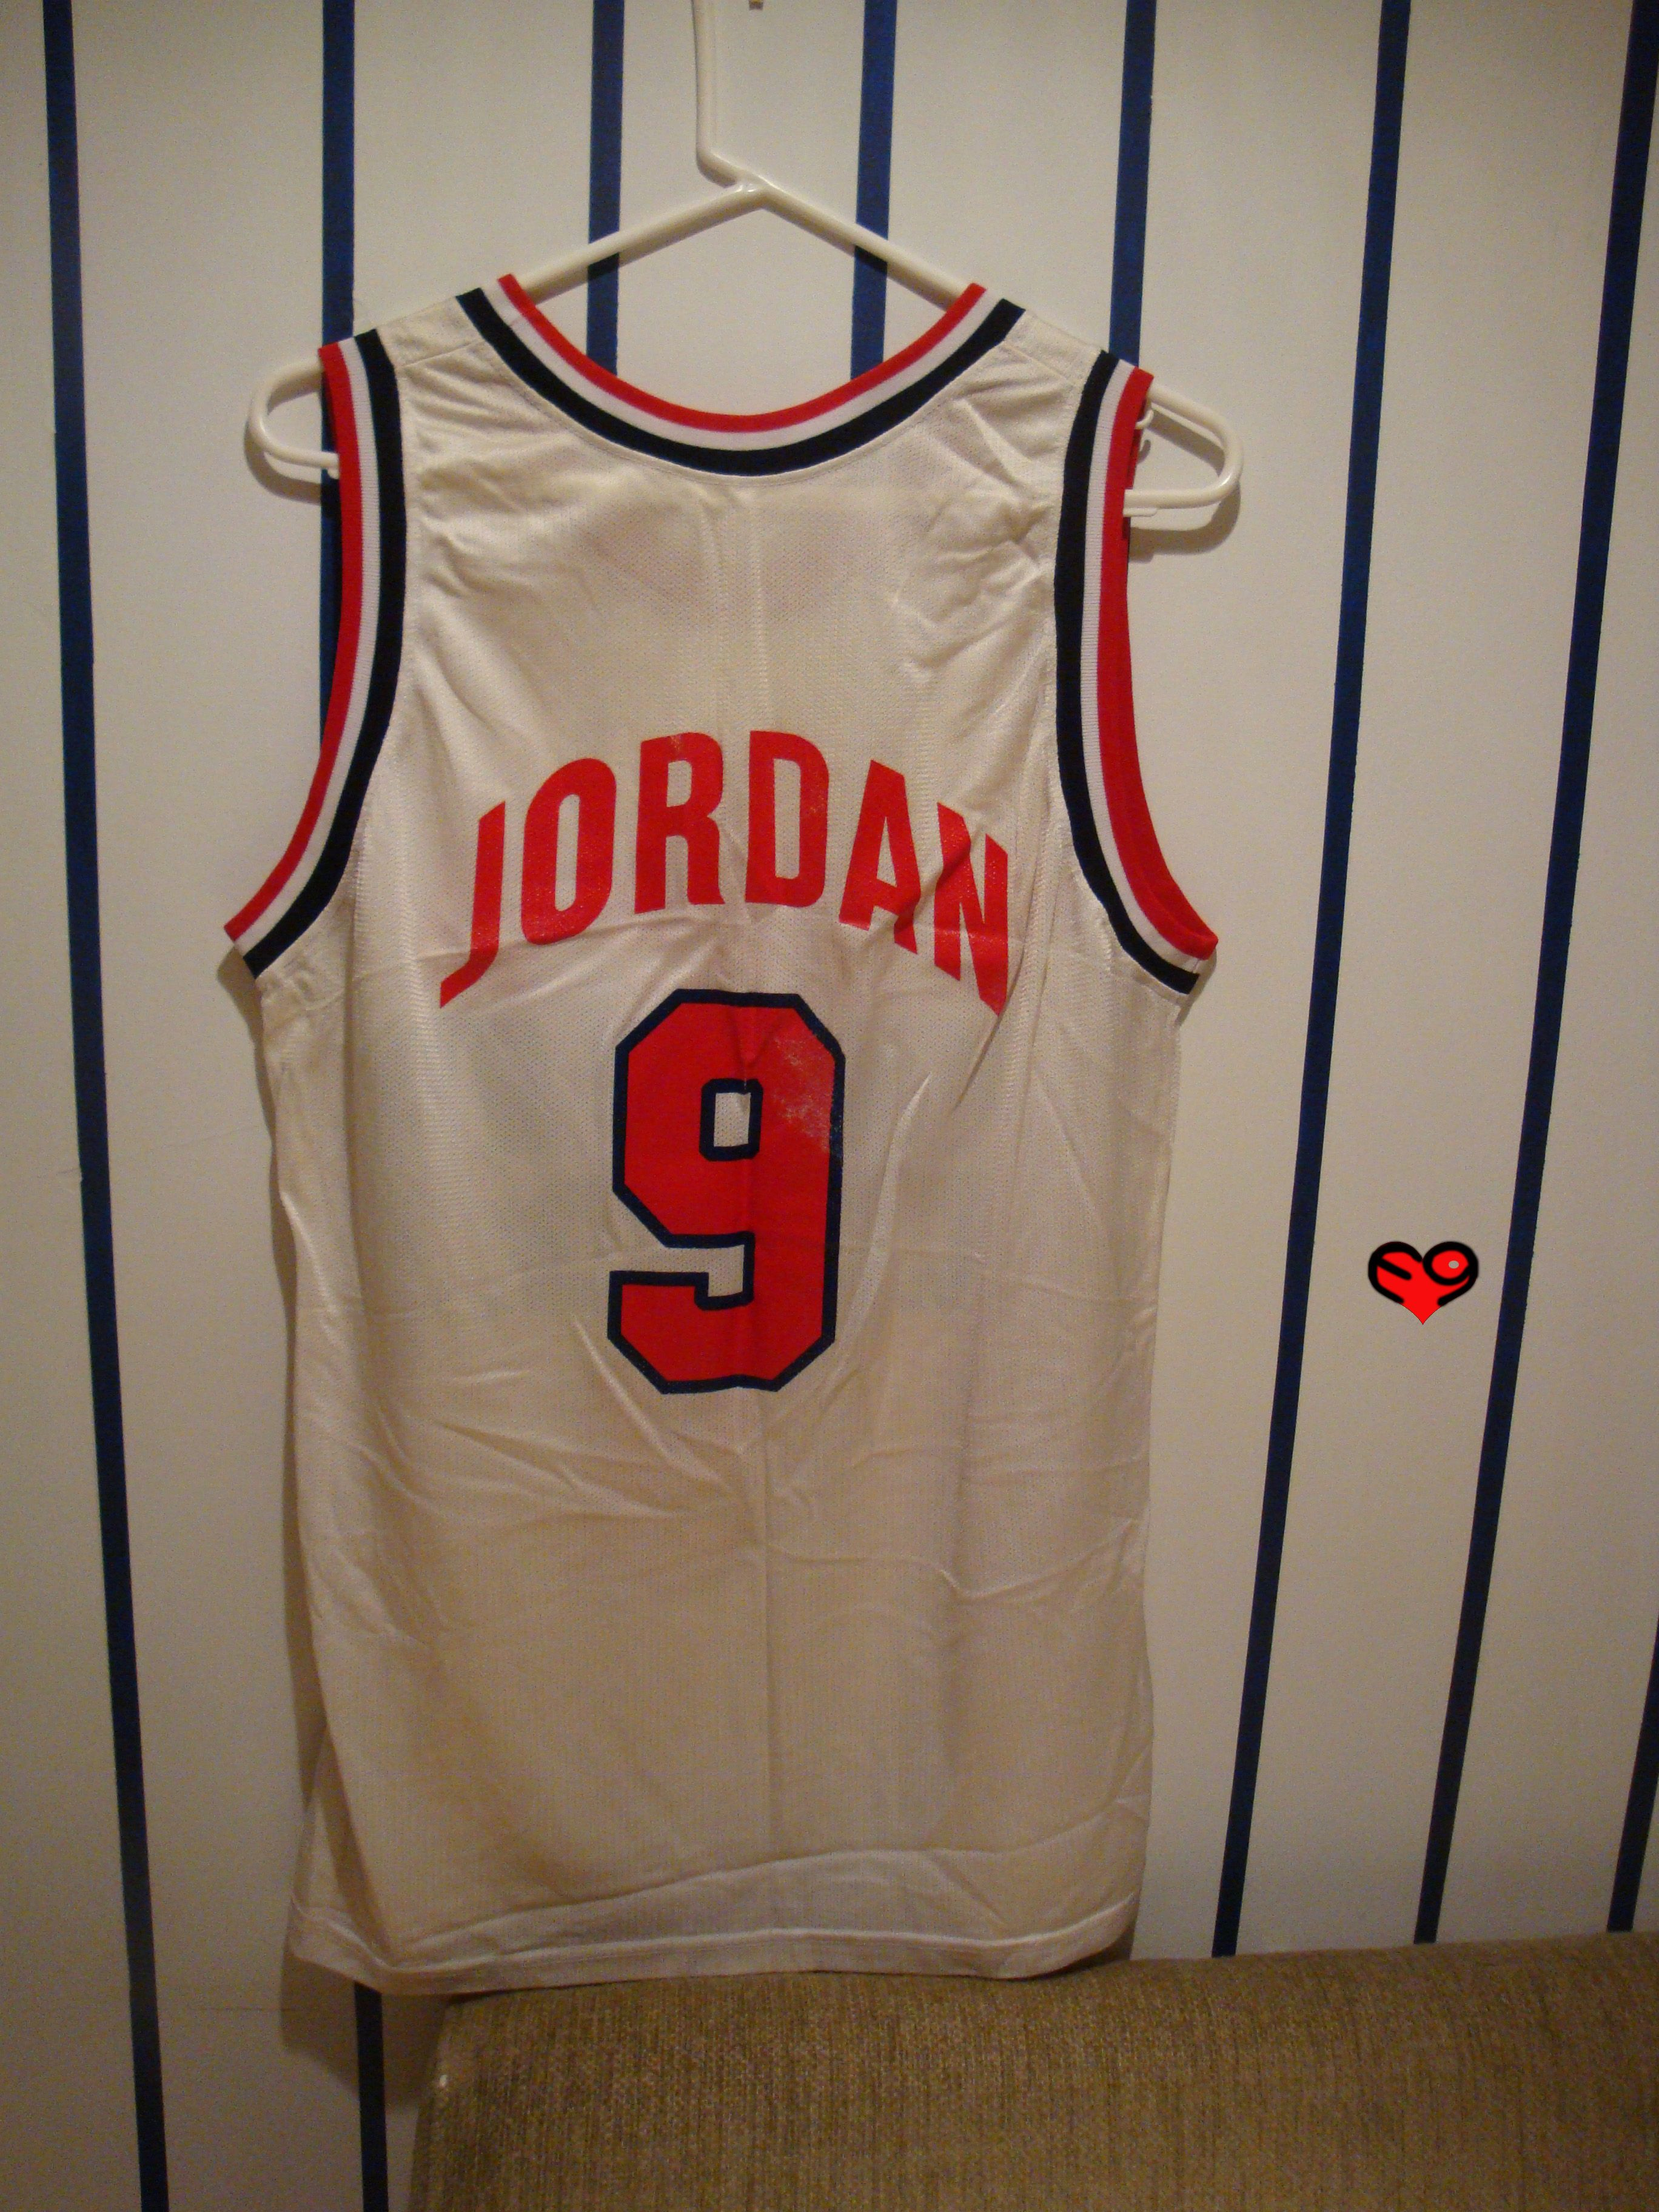 Jordan Usa Olympic Replica Home Jersey Back